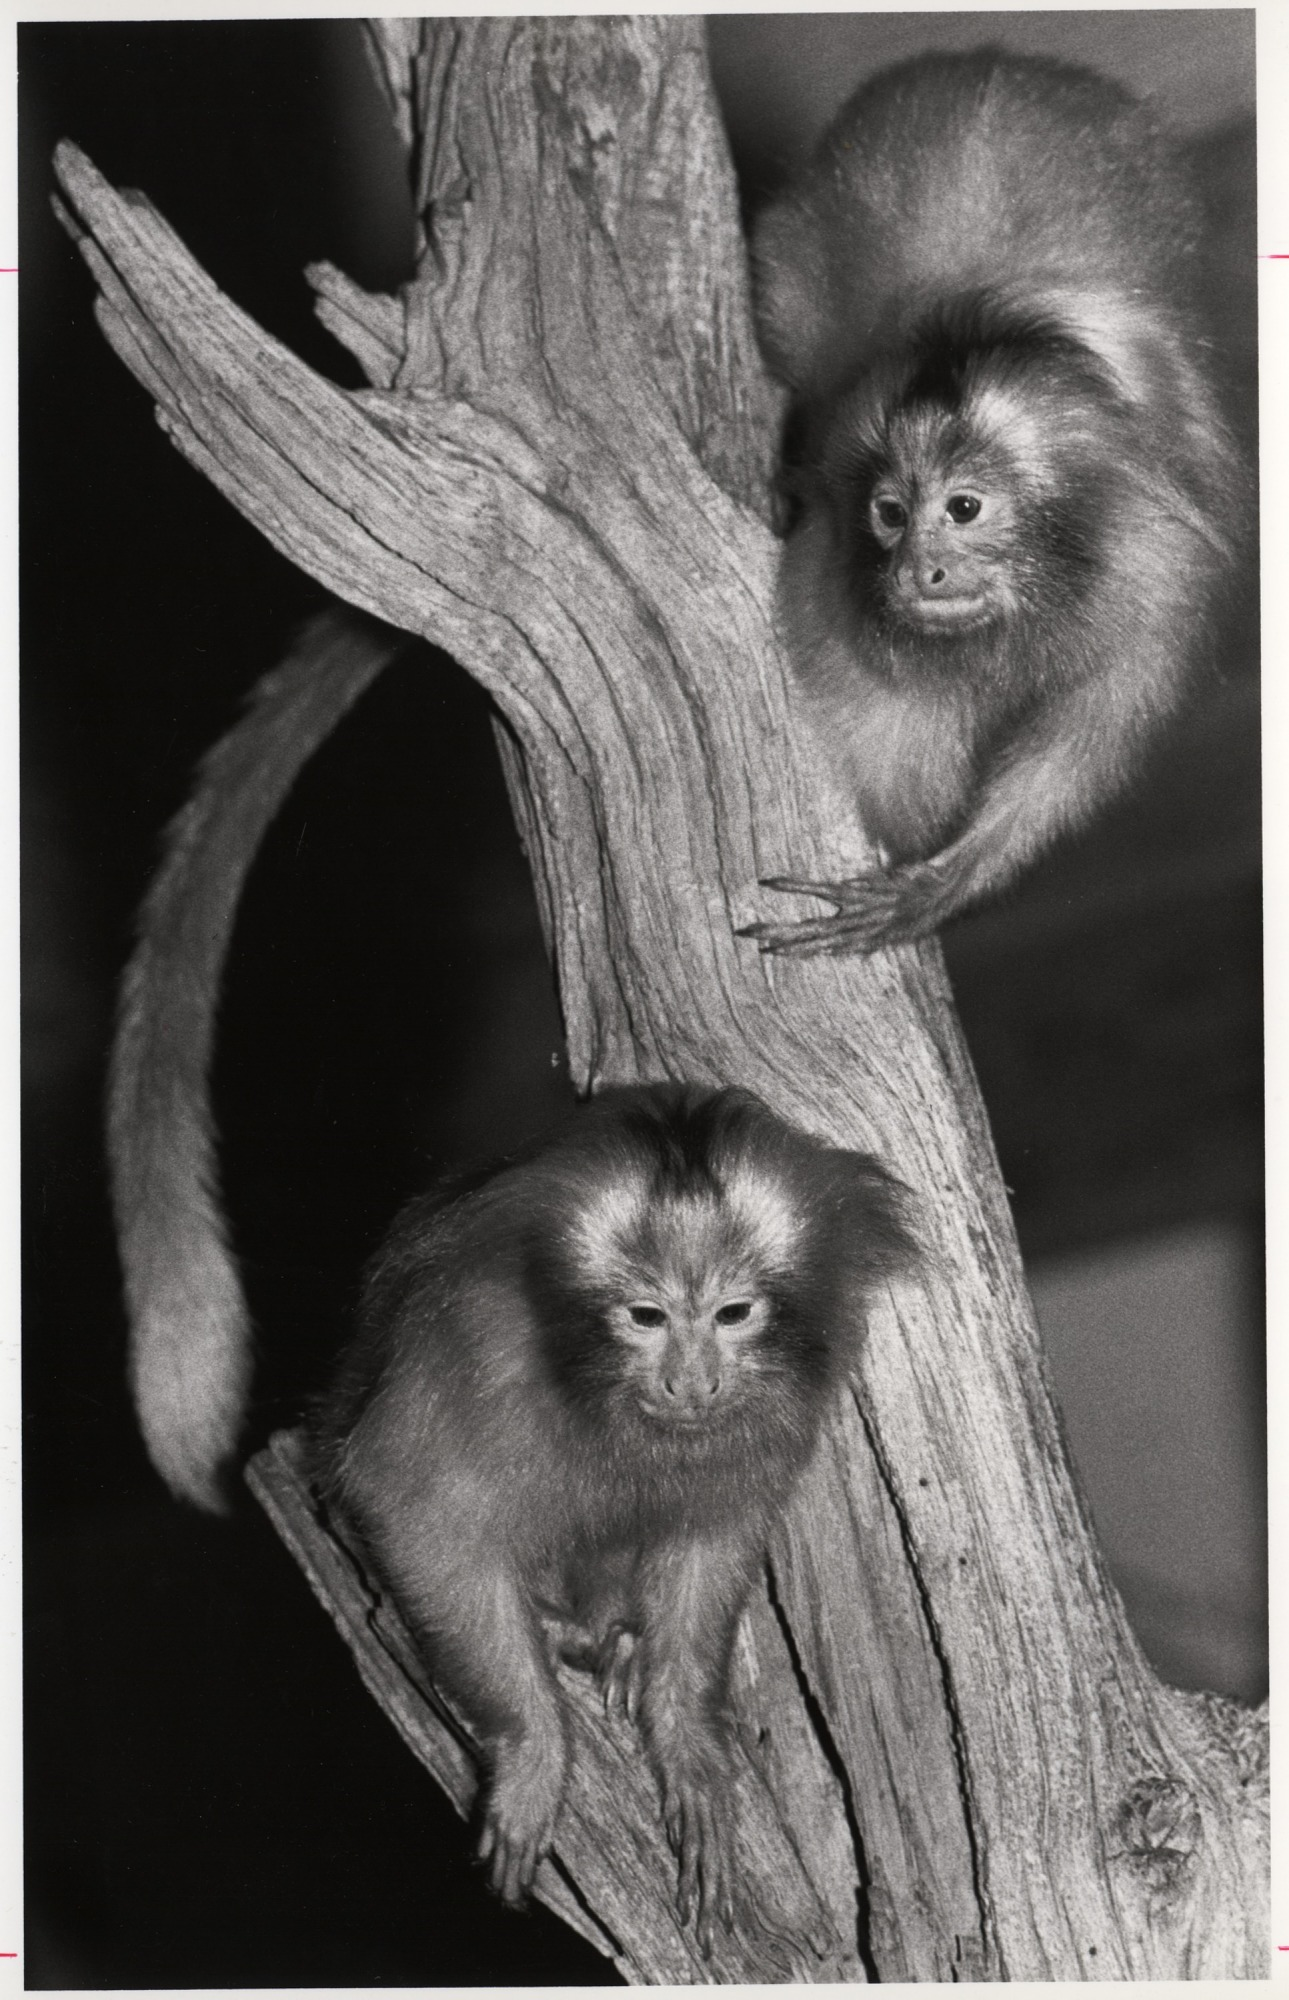 Golden Lion Tamarins, by Cohen, Jessie, 1983, Smithsonian Archives - History Div, 2003-19577.